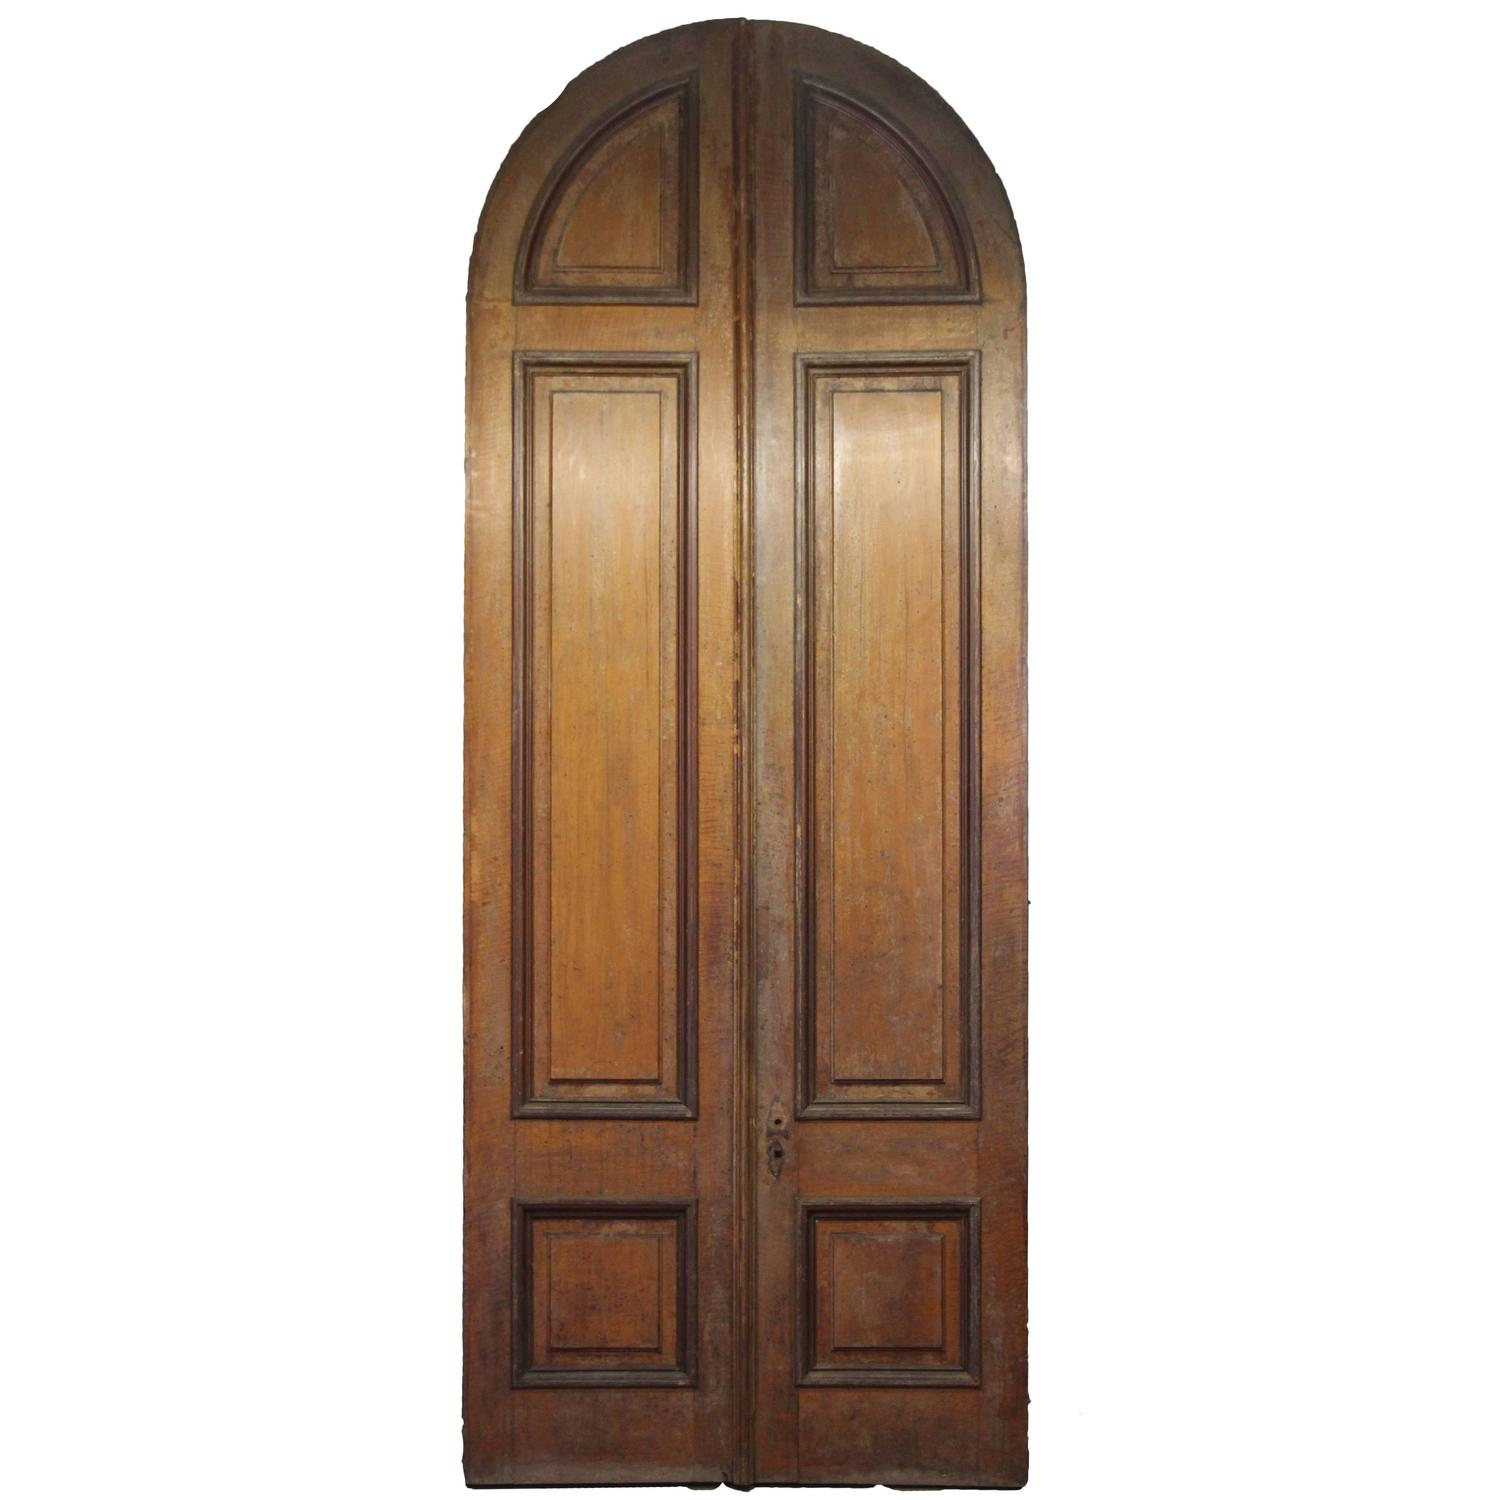 1500 #91663A 1876 Pair Of Oversize Raised Panel Arched Entry Double Doors From New  save image Arched Double Entry Doors 40771500